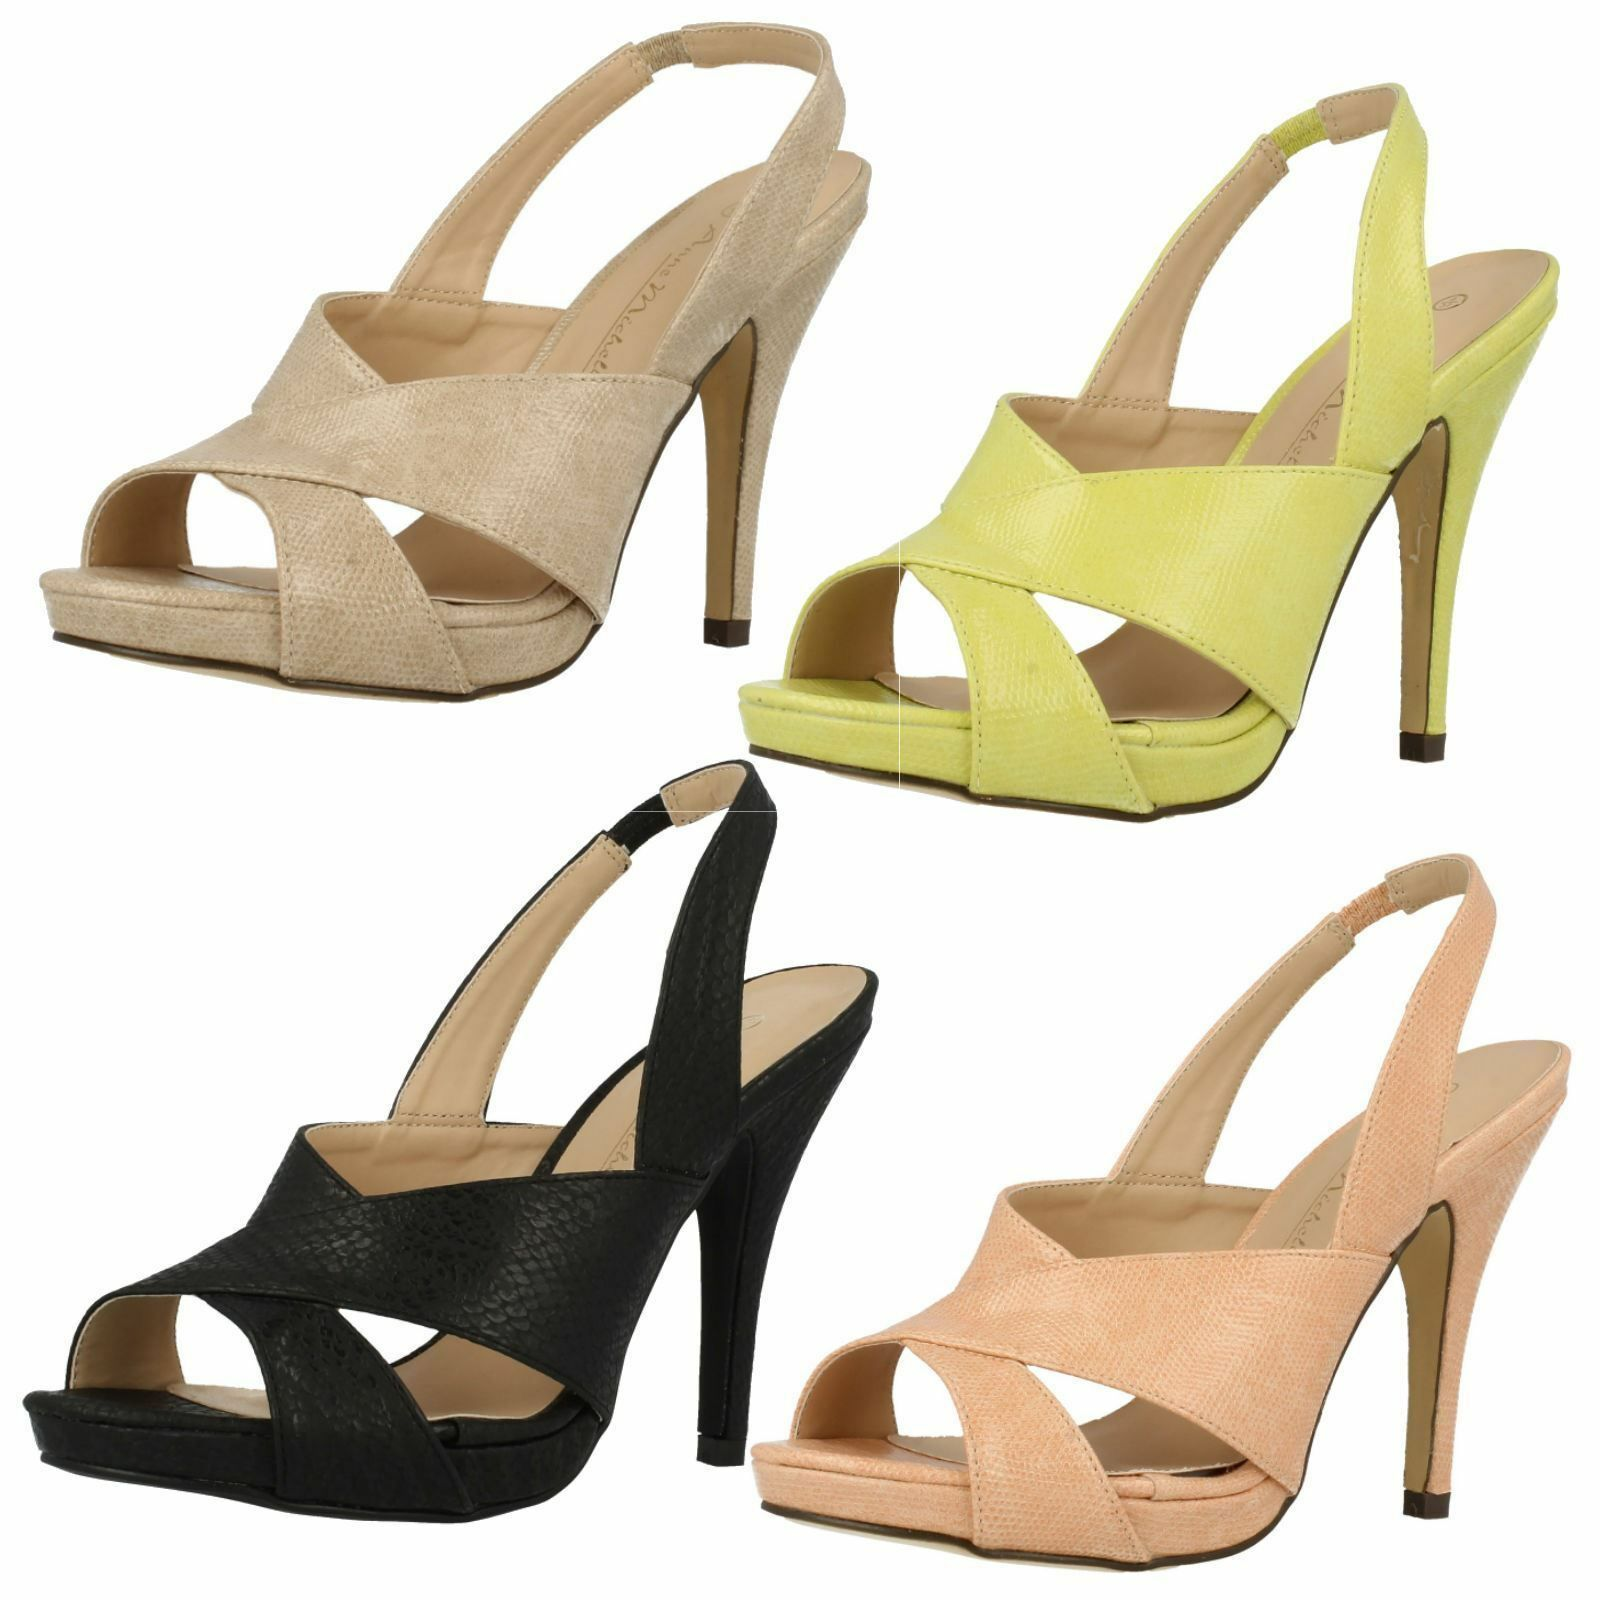 Ladies SALE Anne Michelle F10411 Sandals Synthetic High Heel Smart Sandals F10411 959718